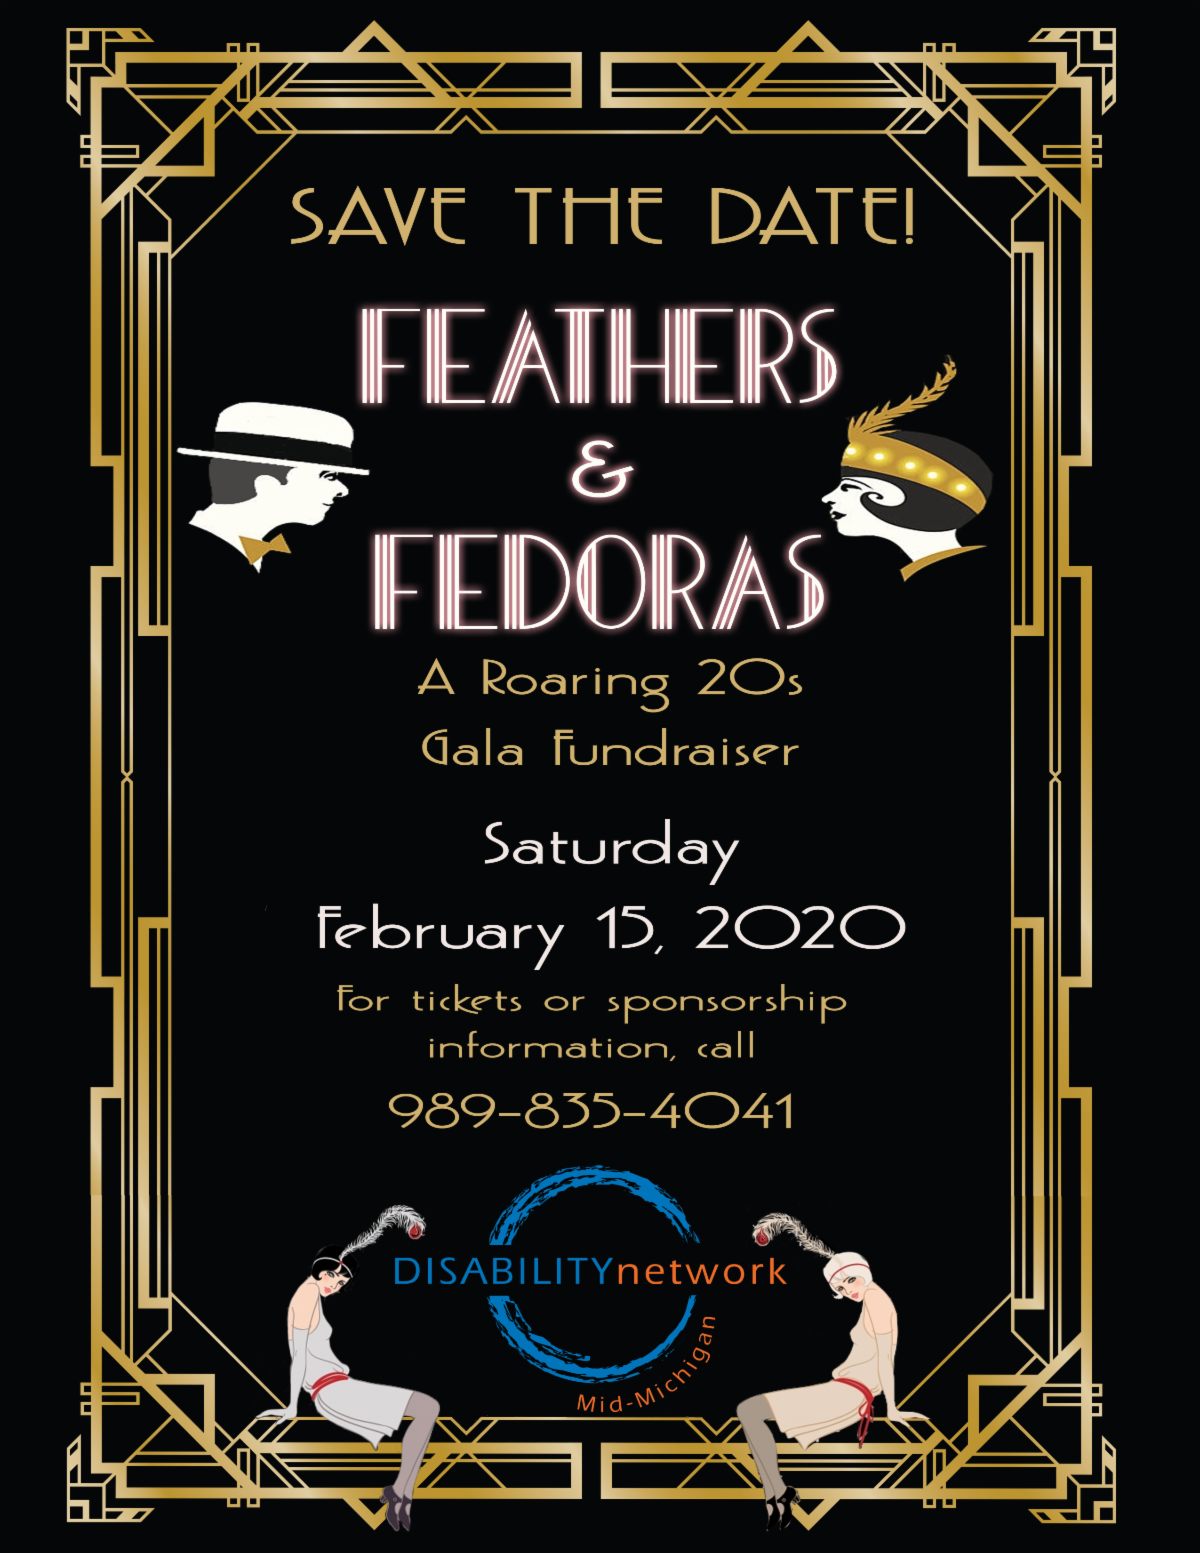 scan of feathers and fedoras invite_ art deco style_ black and gold with 1920s flapper girls